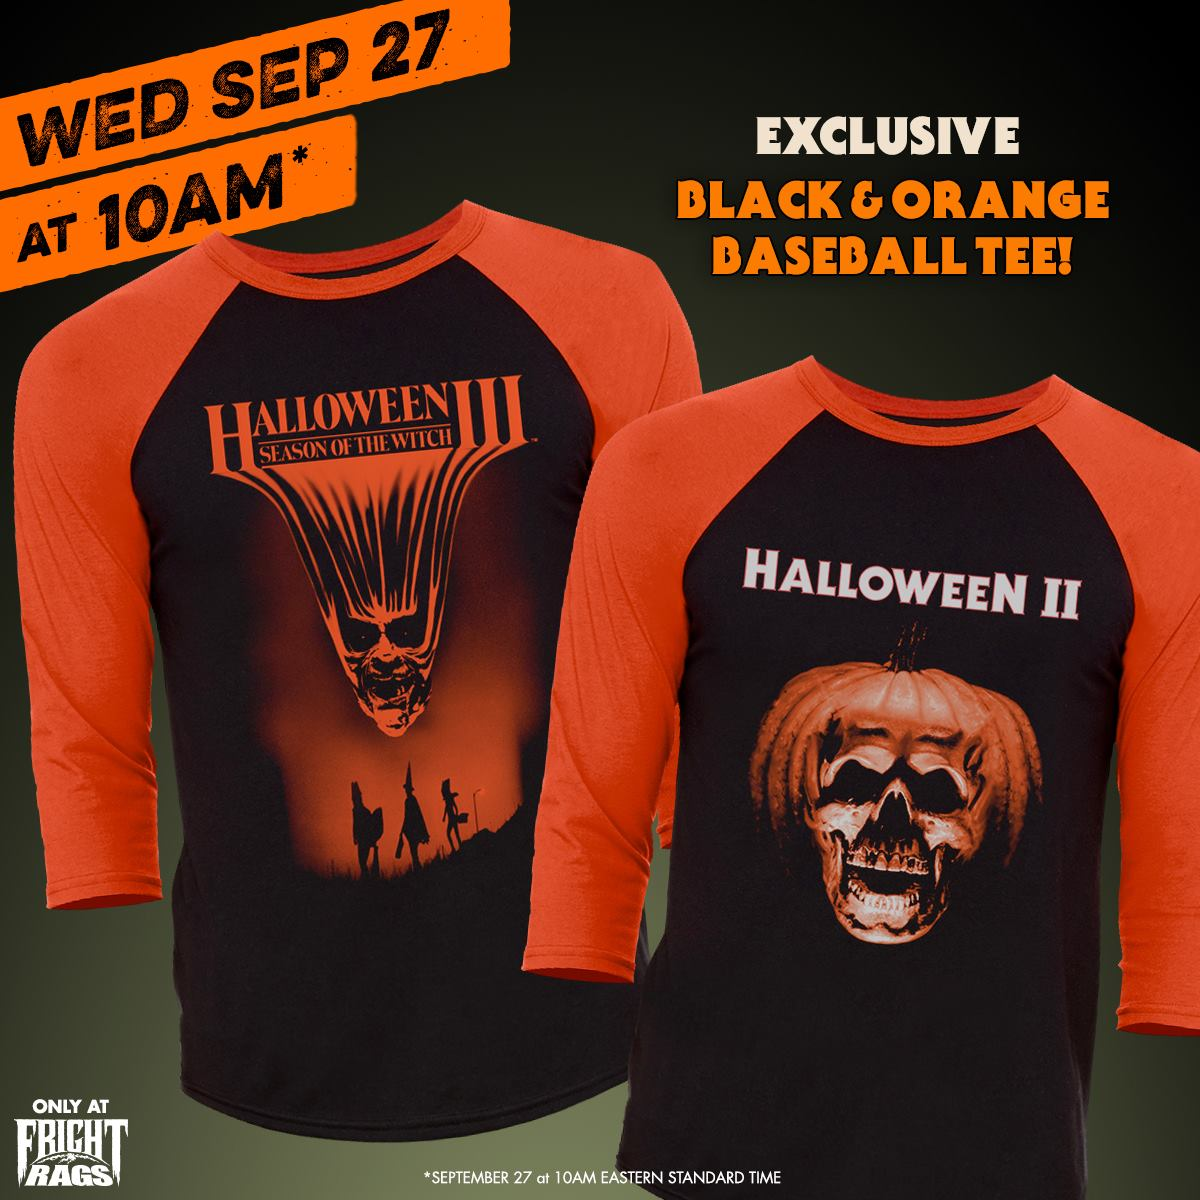 officially licensed halloween ii and halloween iii collections include baseball tees t shirts socks hoodie and enamel pins